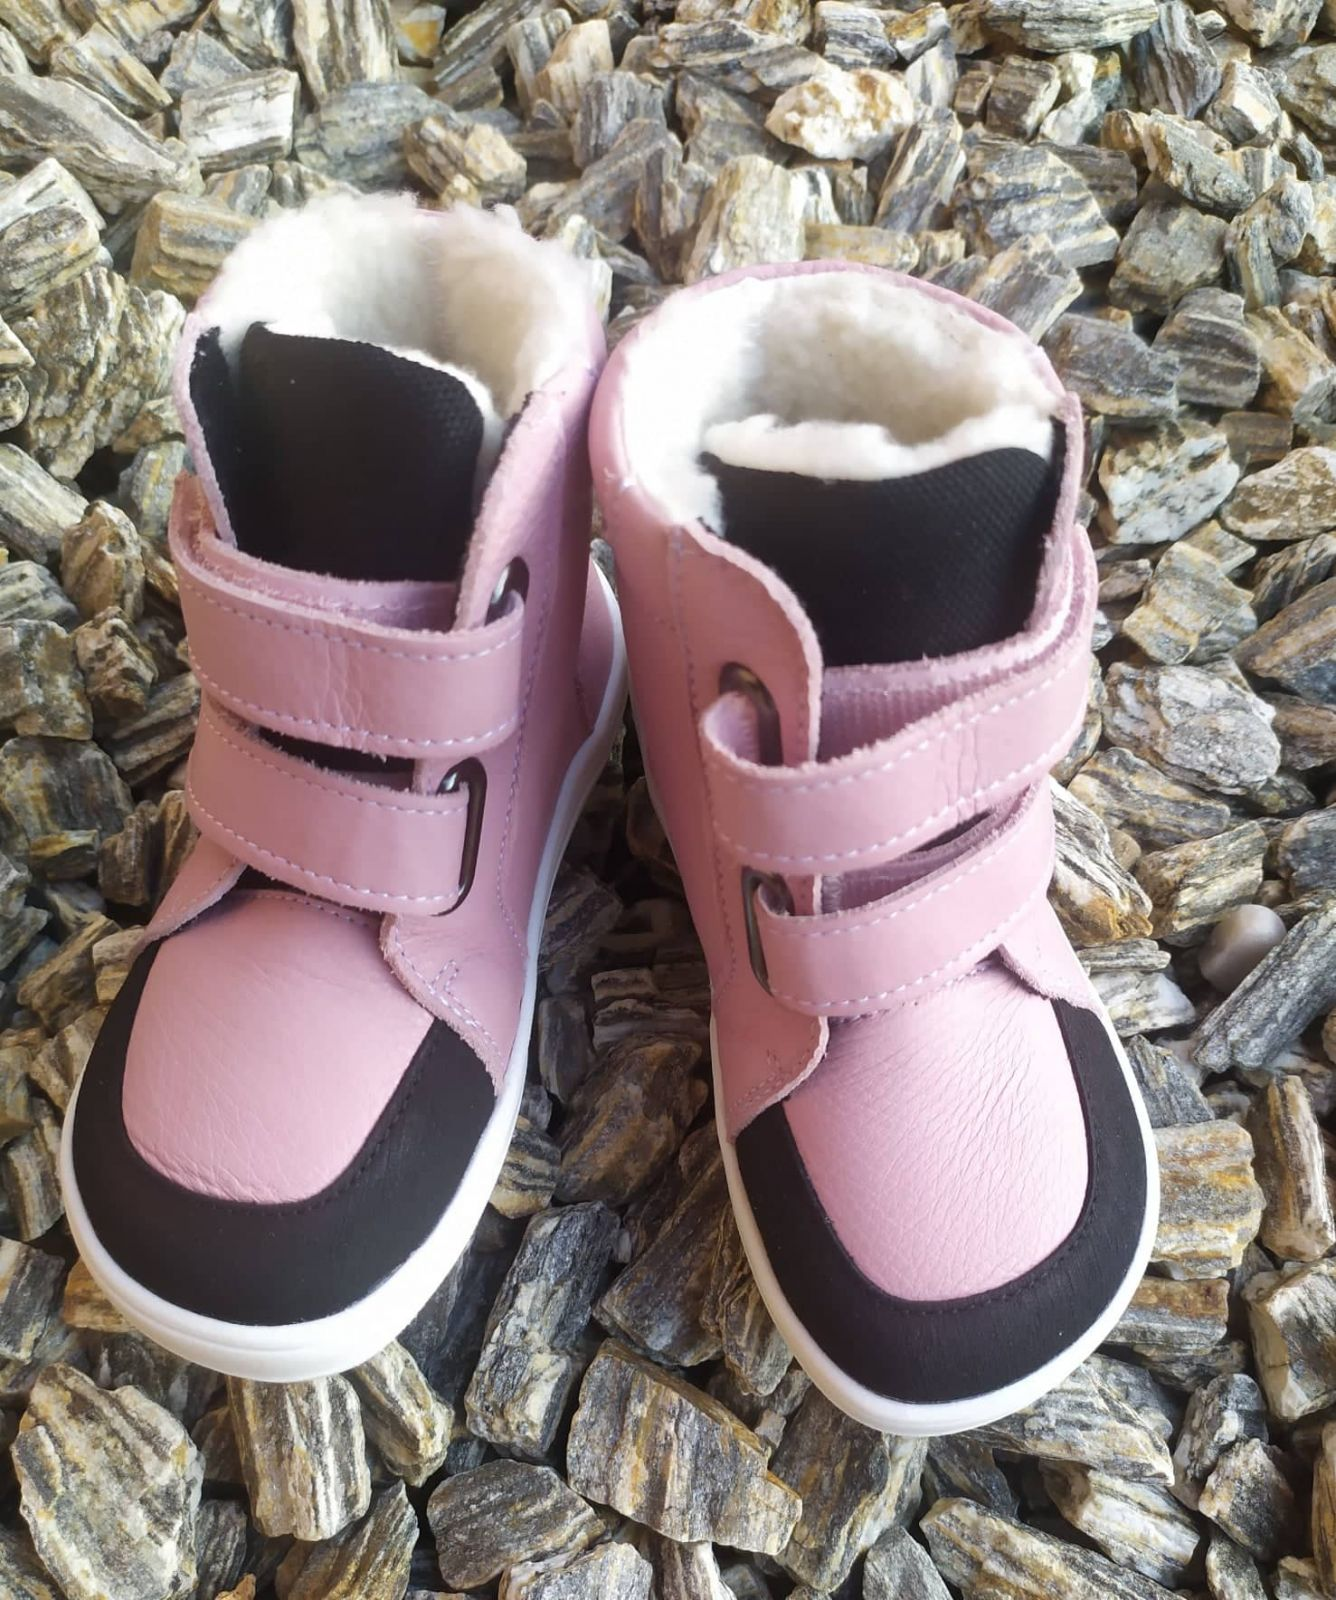 Barefoot BABY BARE WINTER Candy OKOP ASFALTICO BABY BARE SHOES bosá